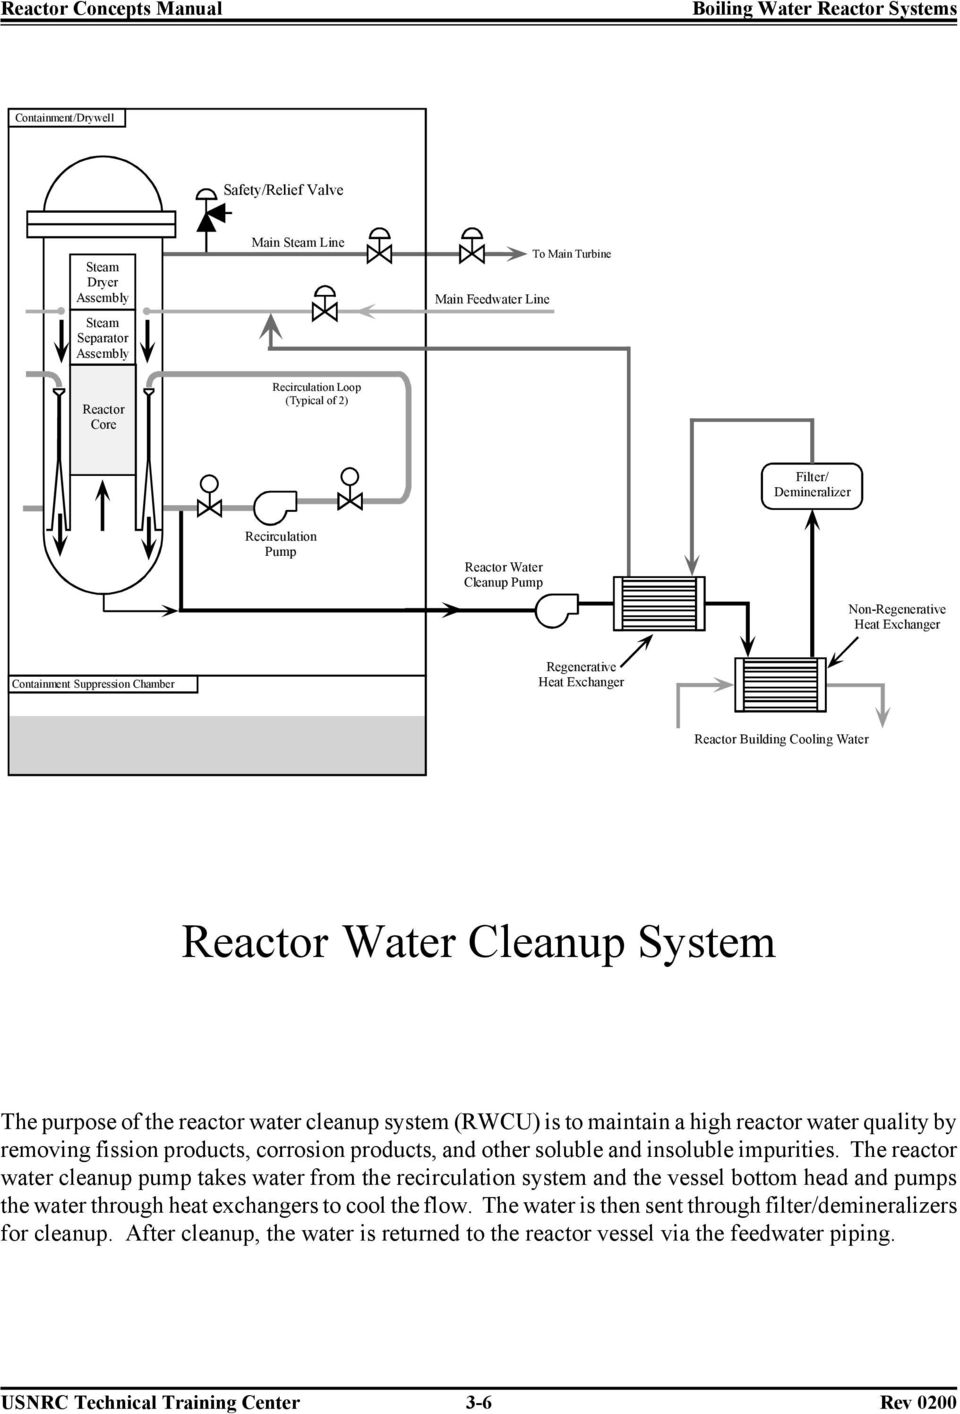 a high reactor water quality by removing fission products, corrosion products, and other soluble and insoluble impurities.